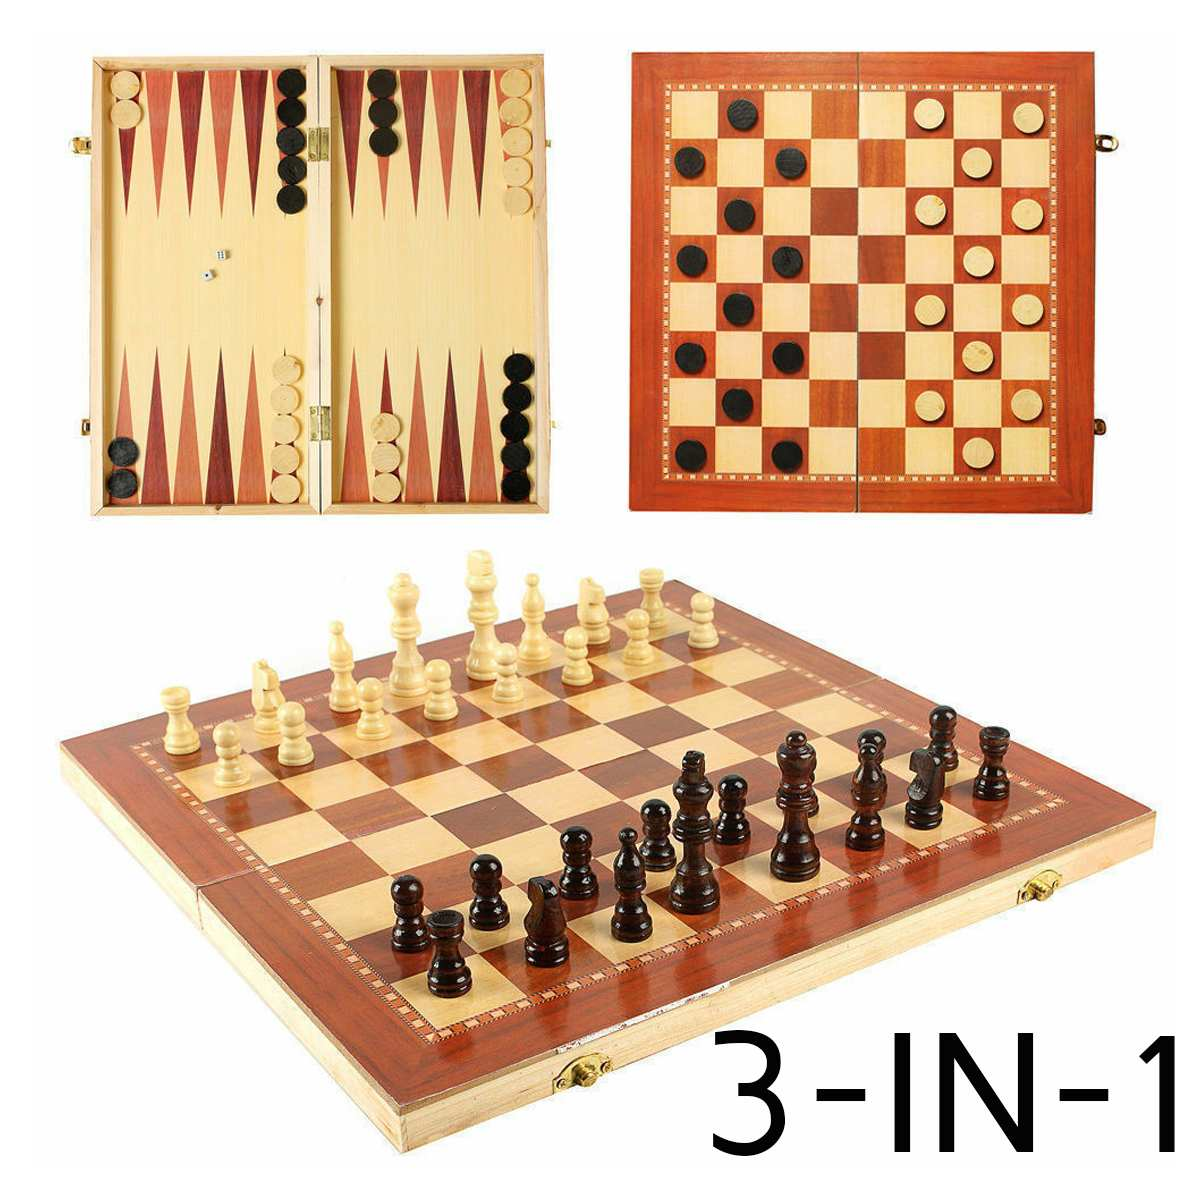 3 In 1 Wood Chess Board Tournament Travel Portable Chess Set International Chess Set Backgammon Draughts Playing Gift